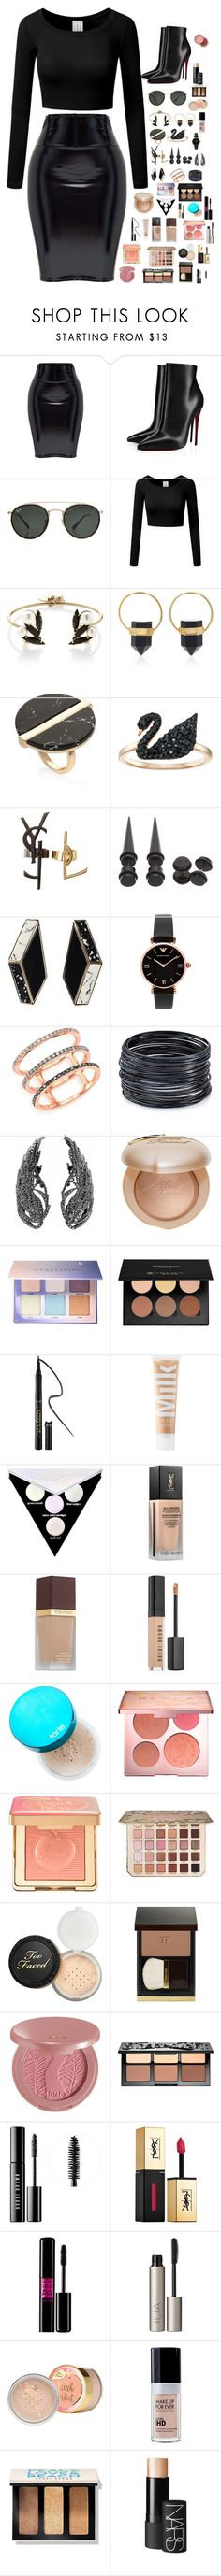 """""""Untitled #108"""" by fanii572 ❤ liked on Polyvore featuring Christian Louboutin, Ray-Ban, Anton Heunis, Isabel Marant, Swarovski, Yves Saint Laurent, Hot Topic, Emporio Armani, EF Collection and ABS by Allen Schwartz"""